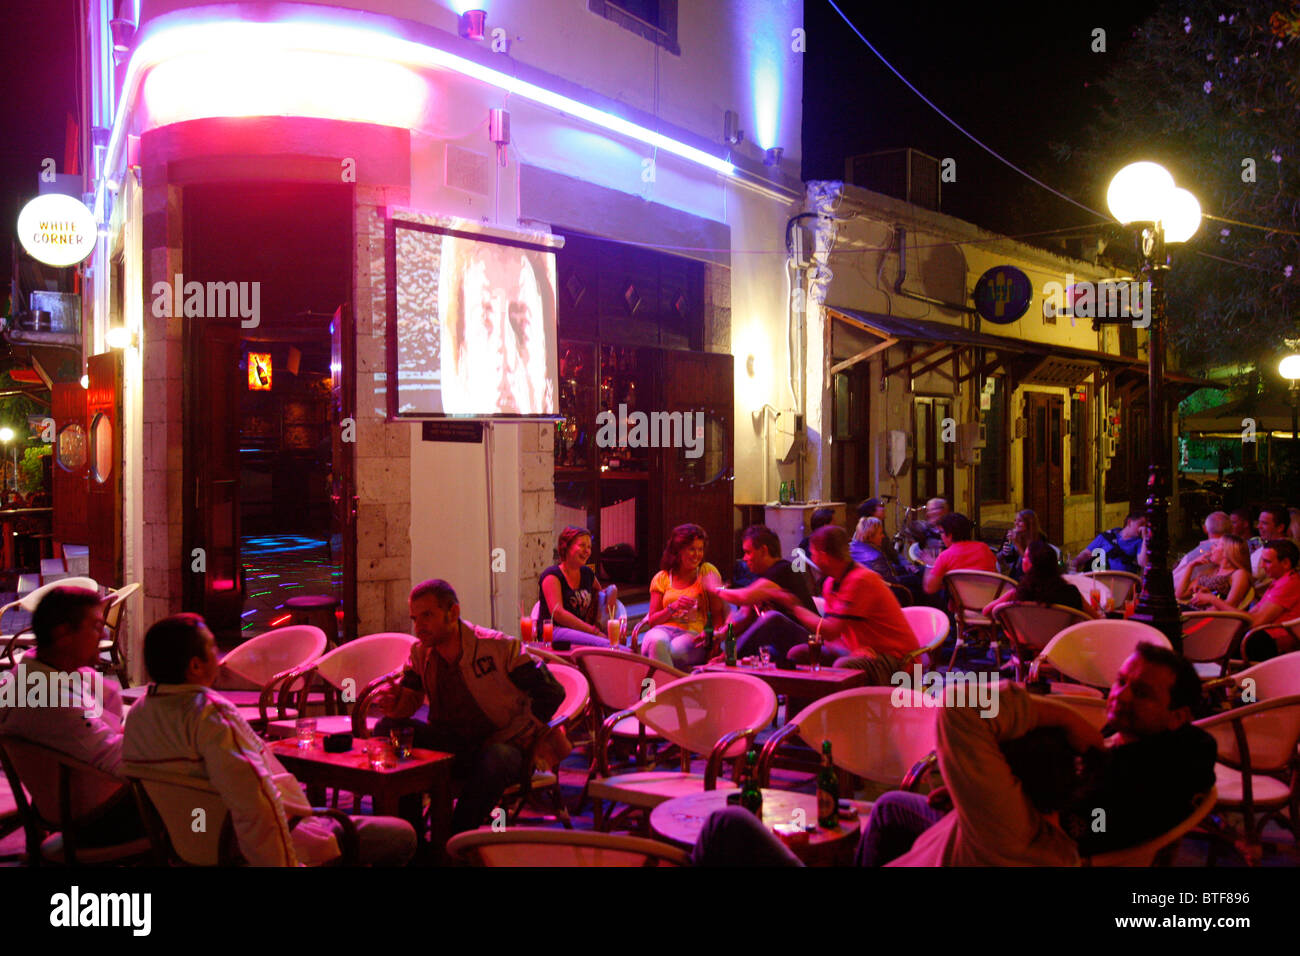 Gallery images and information kos greece nightlife - People At The White Corner Club In The Bar Street At Kos Town Kos